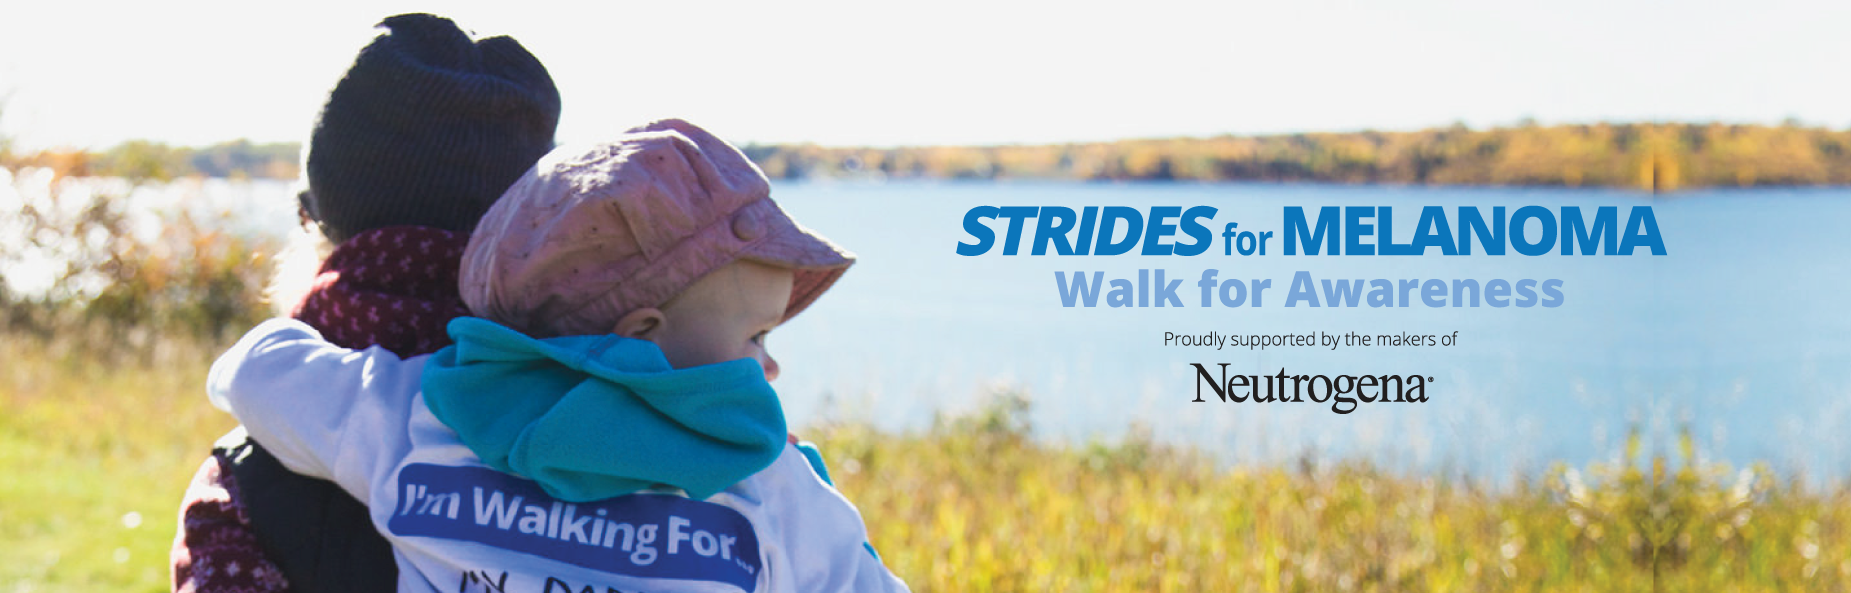 Strides for Melanoma Walk for Awareness